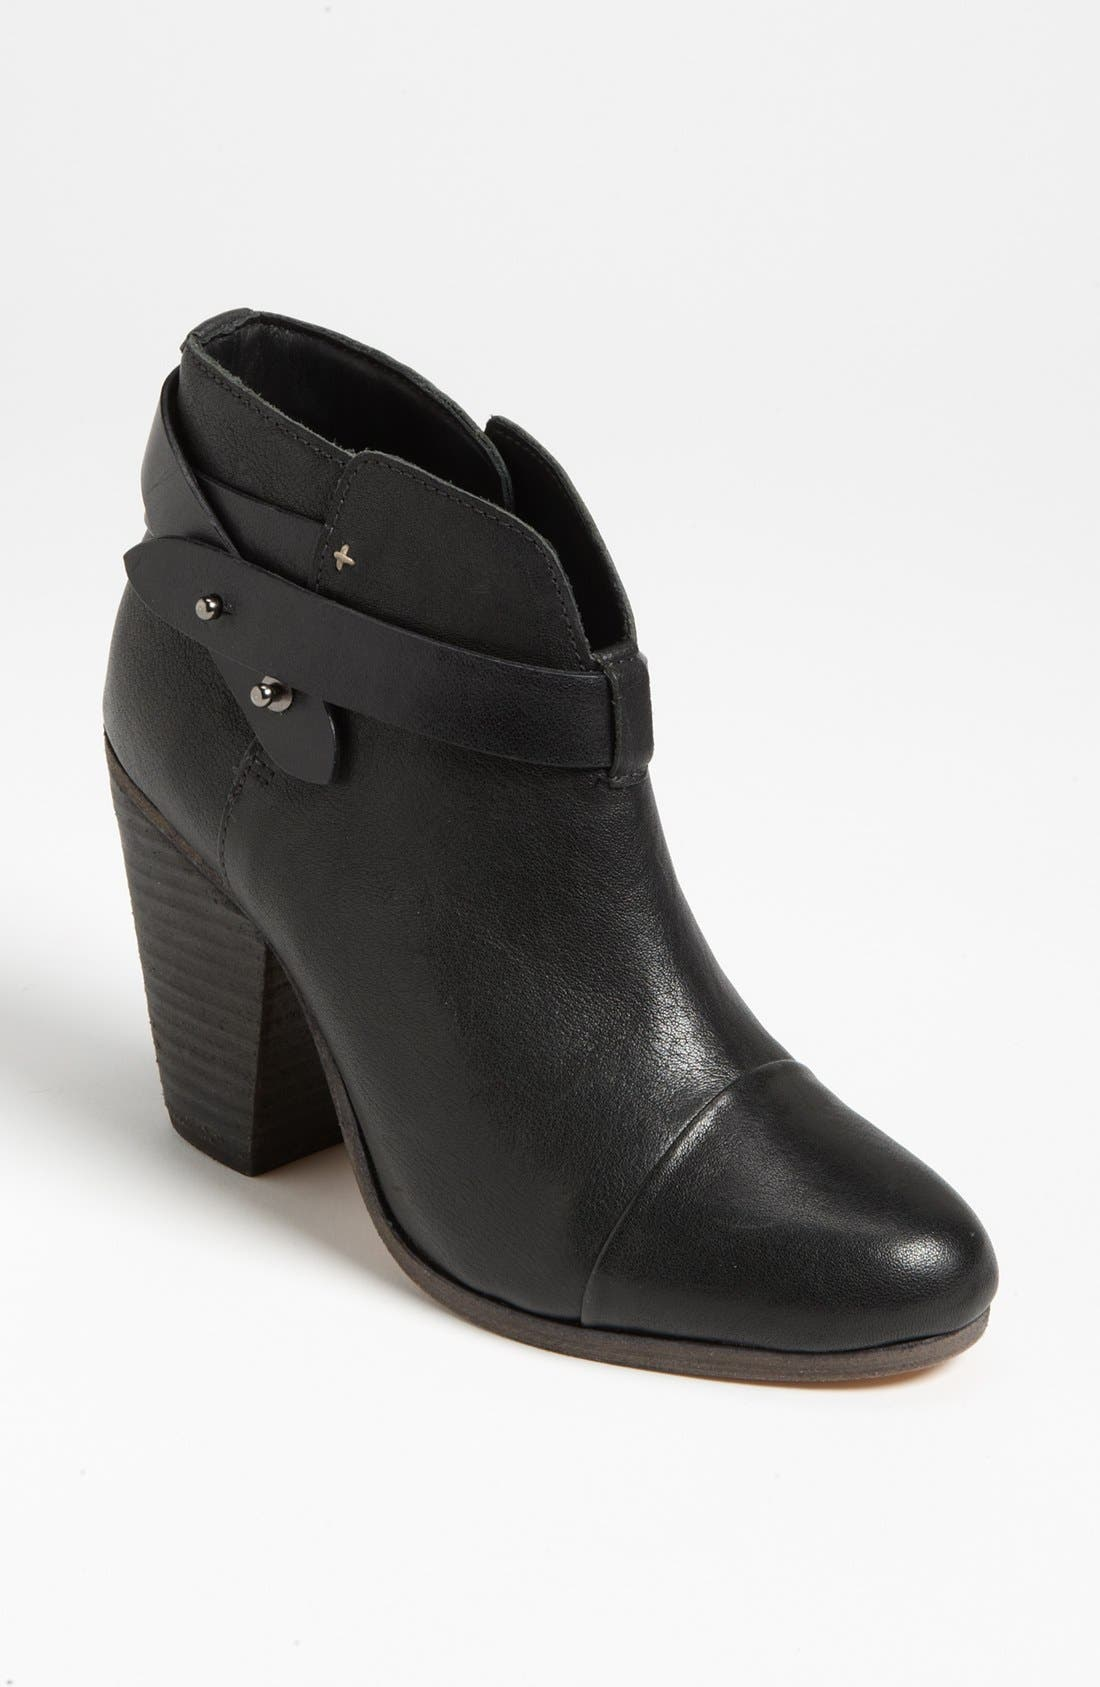 RAG & BONE 'Harrow' Leather Boot, Main, color, BLACK